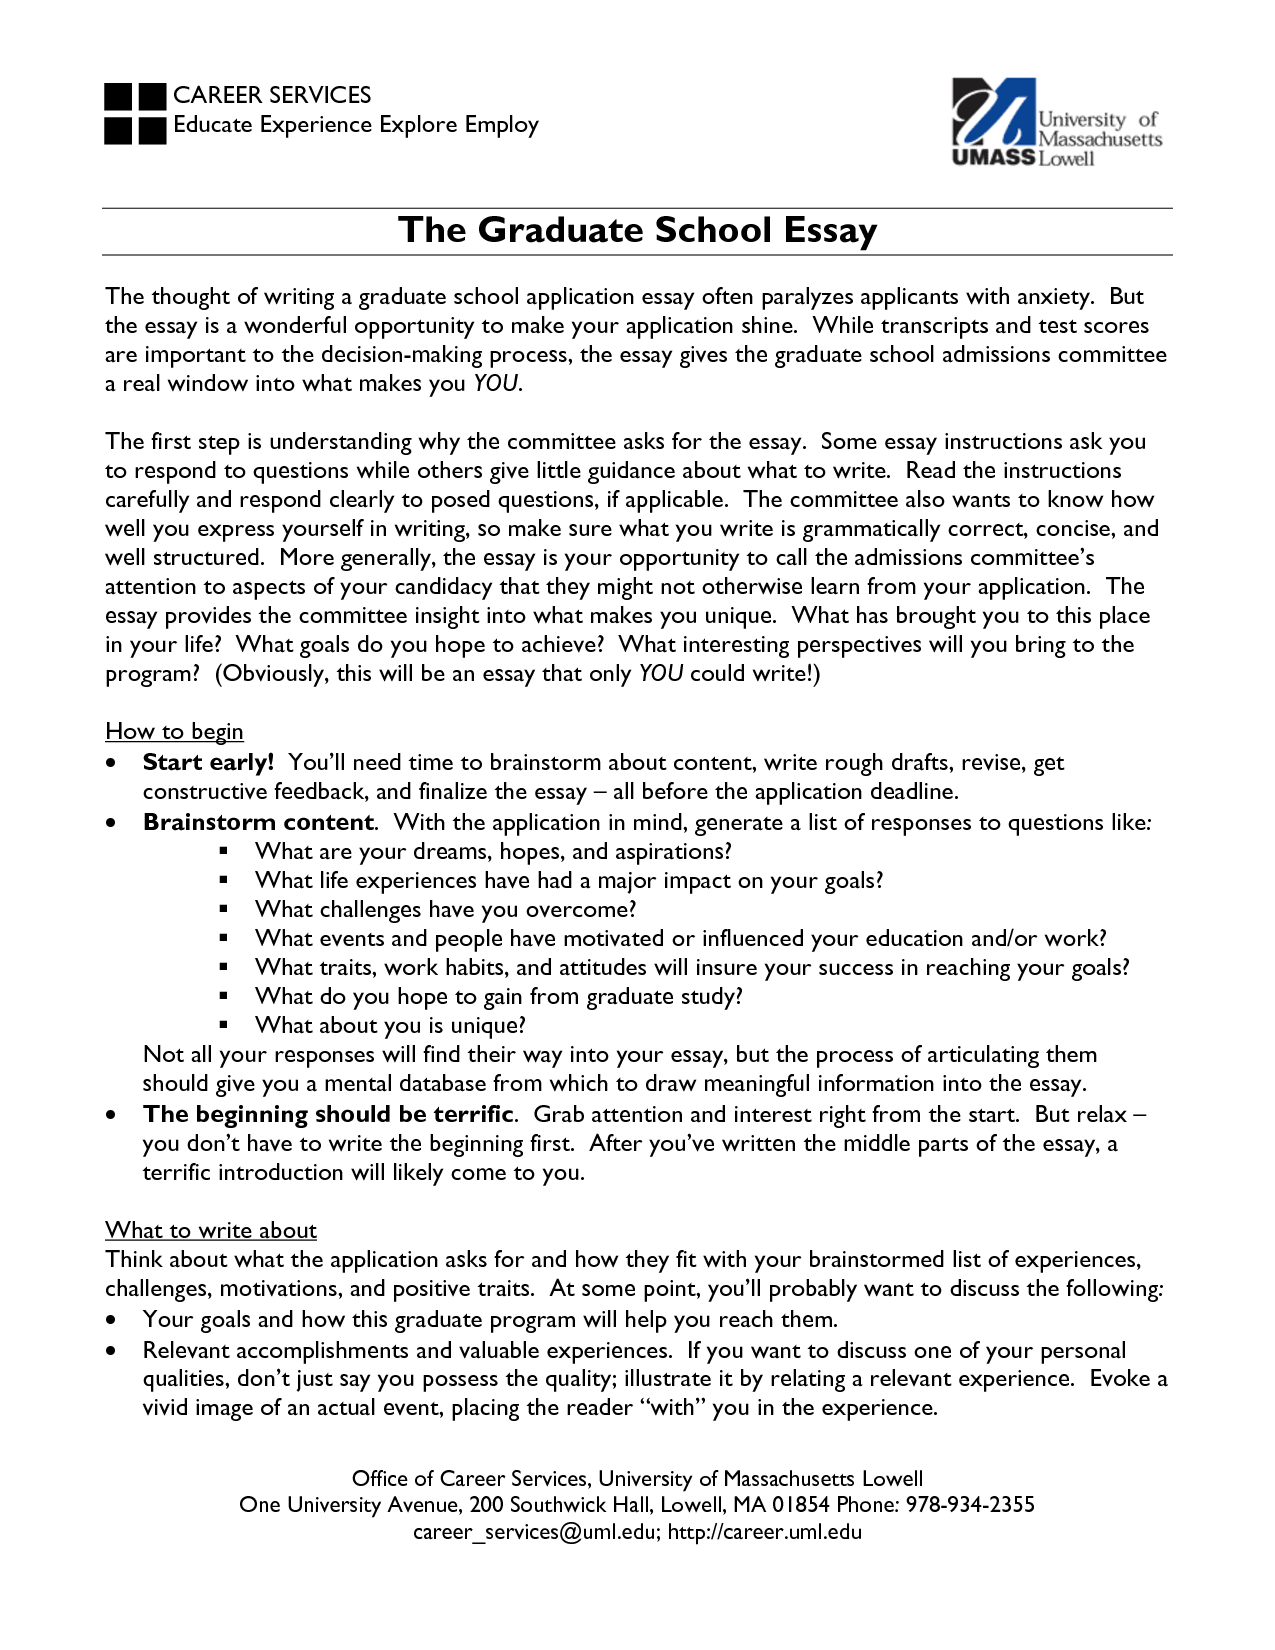 write admissions essay graduate school With your sights set on graduate school, get ready for writing to become a major part of your routine from the application process through your post-academic career.